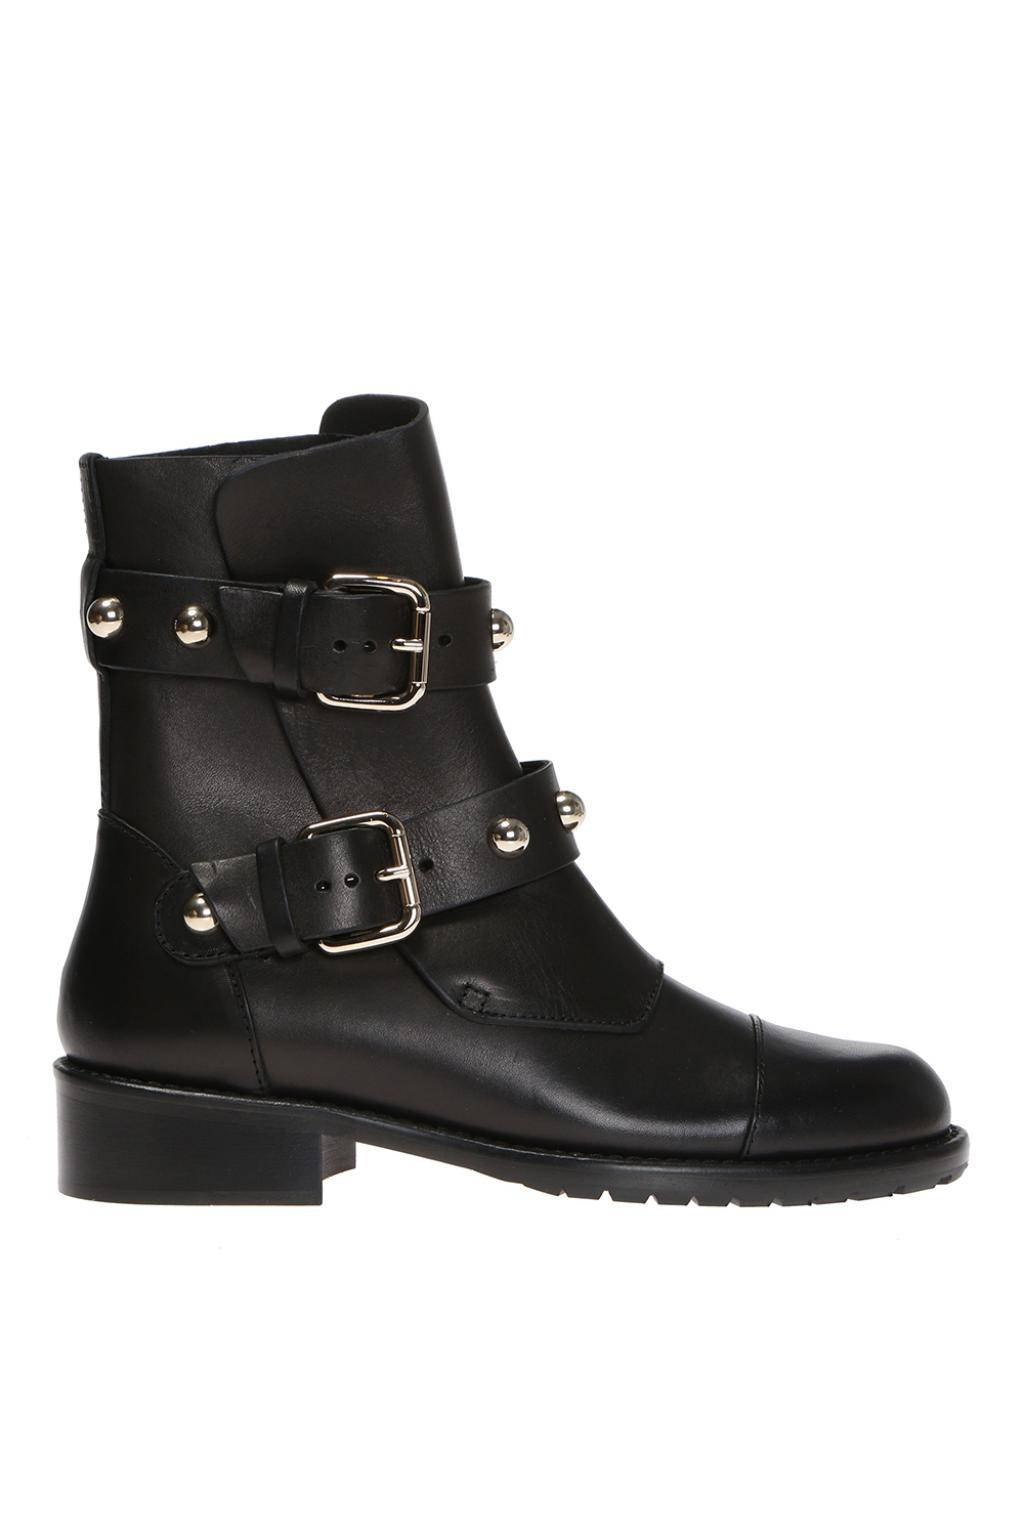 online cheap quality Red Valentino buckle studded ankle boots 100% authentic cheap price xlbAPtrSK